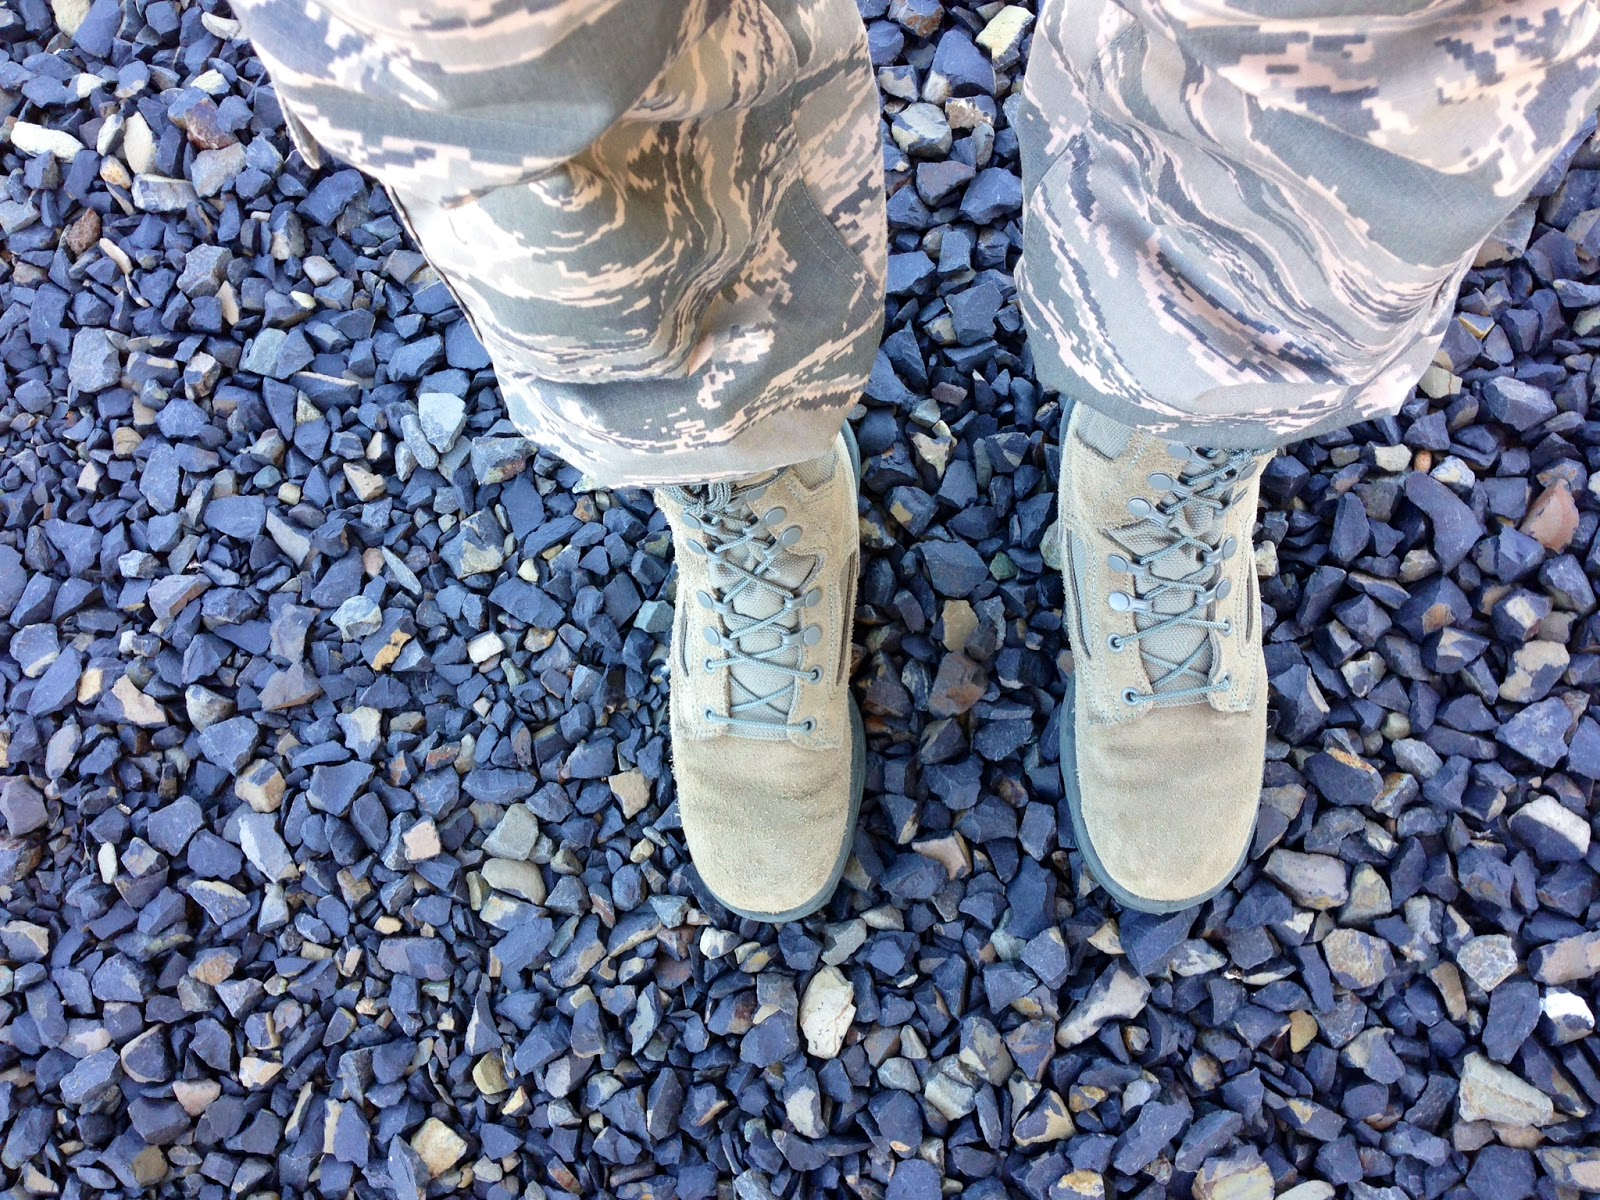 Military Acronyms on Aunie Sauce, ABU boots and pants